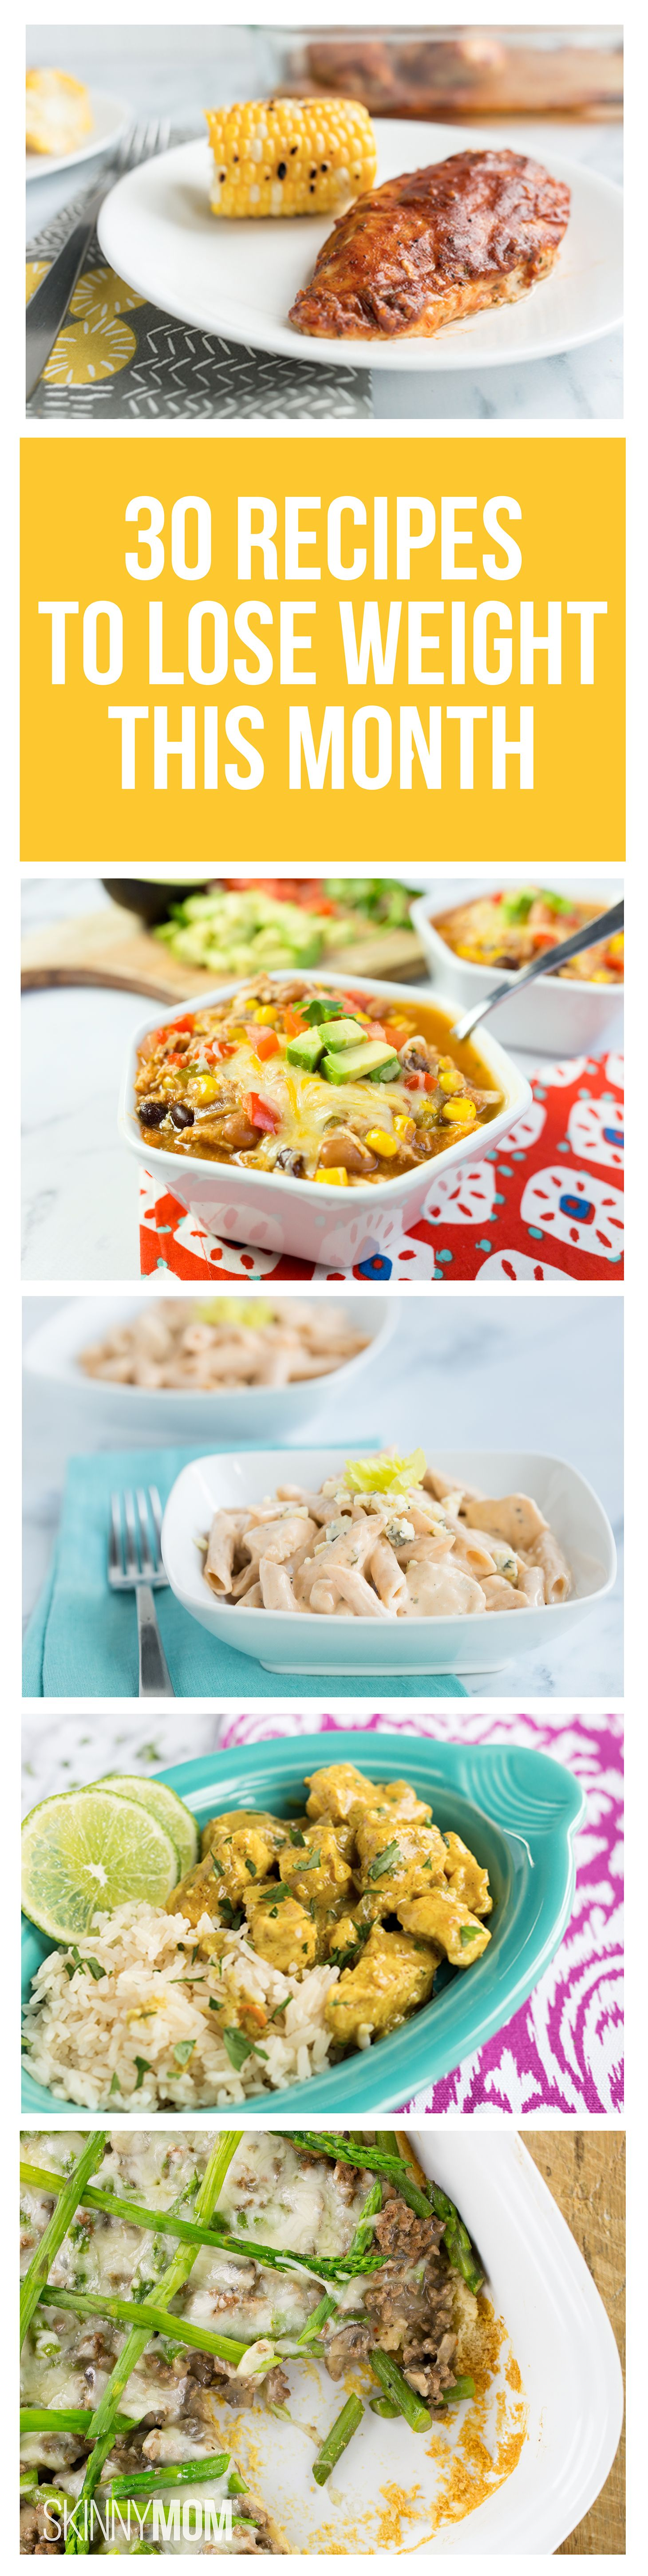 30 easy and delicious recipes that will make it easy to lose weight this month!